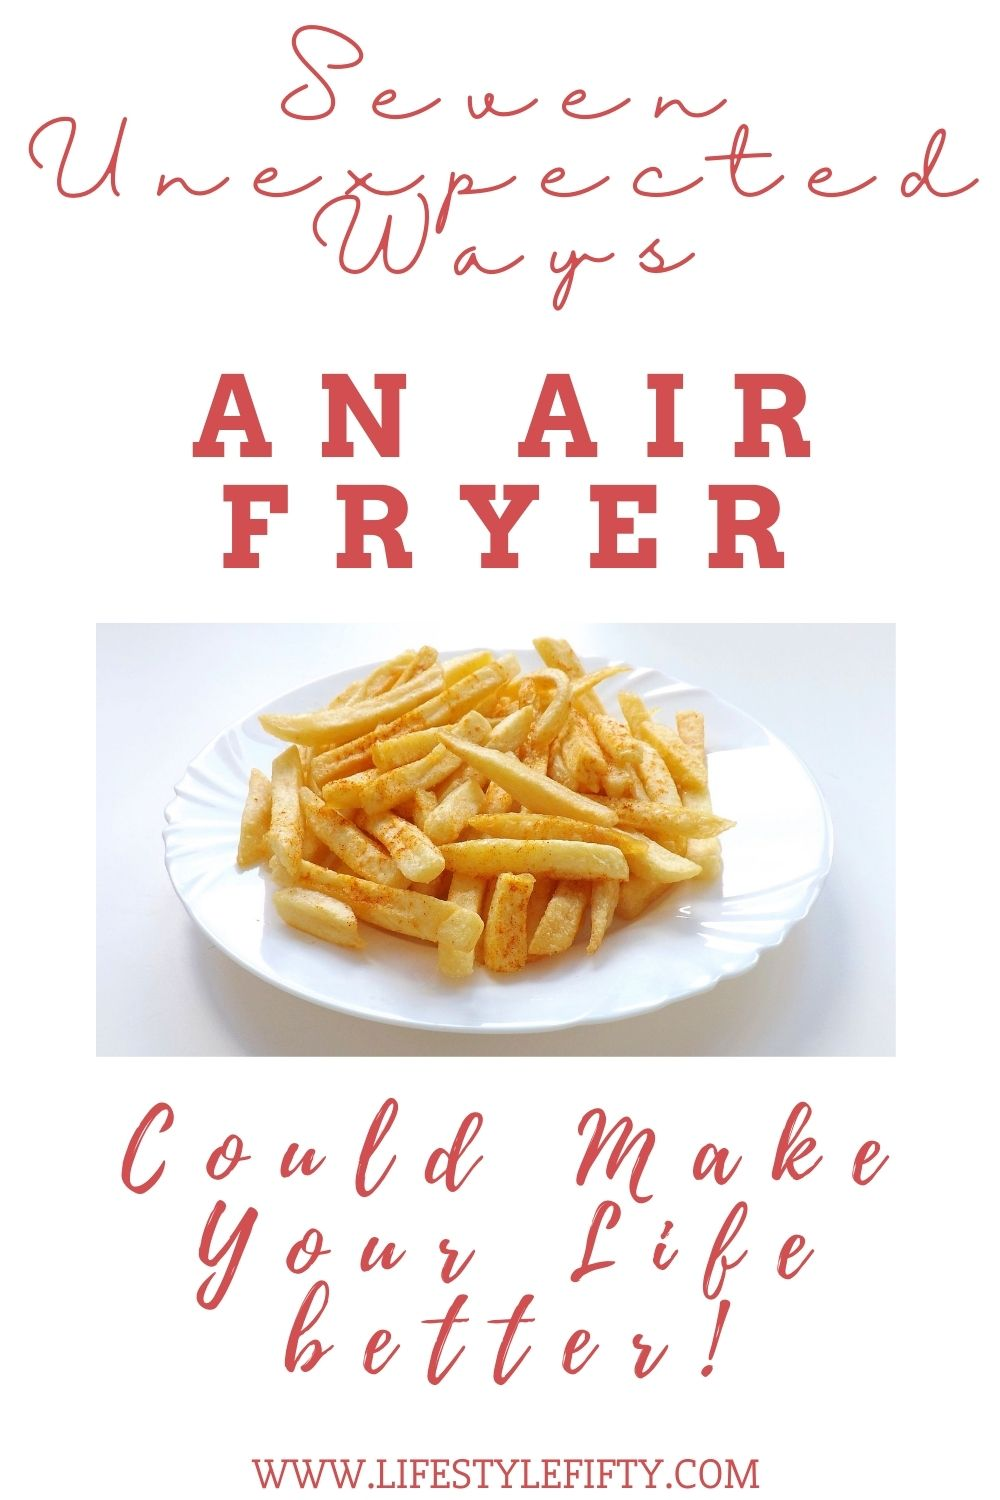 Chips, and text overlay, for air fryer post on Lifestyle Fifty